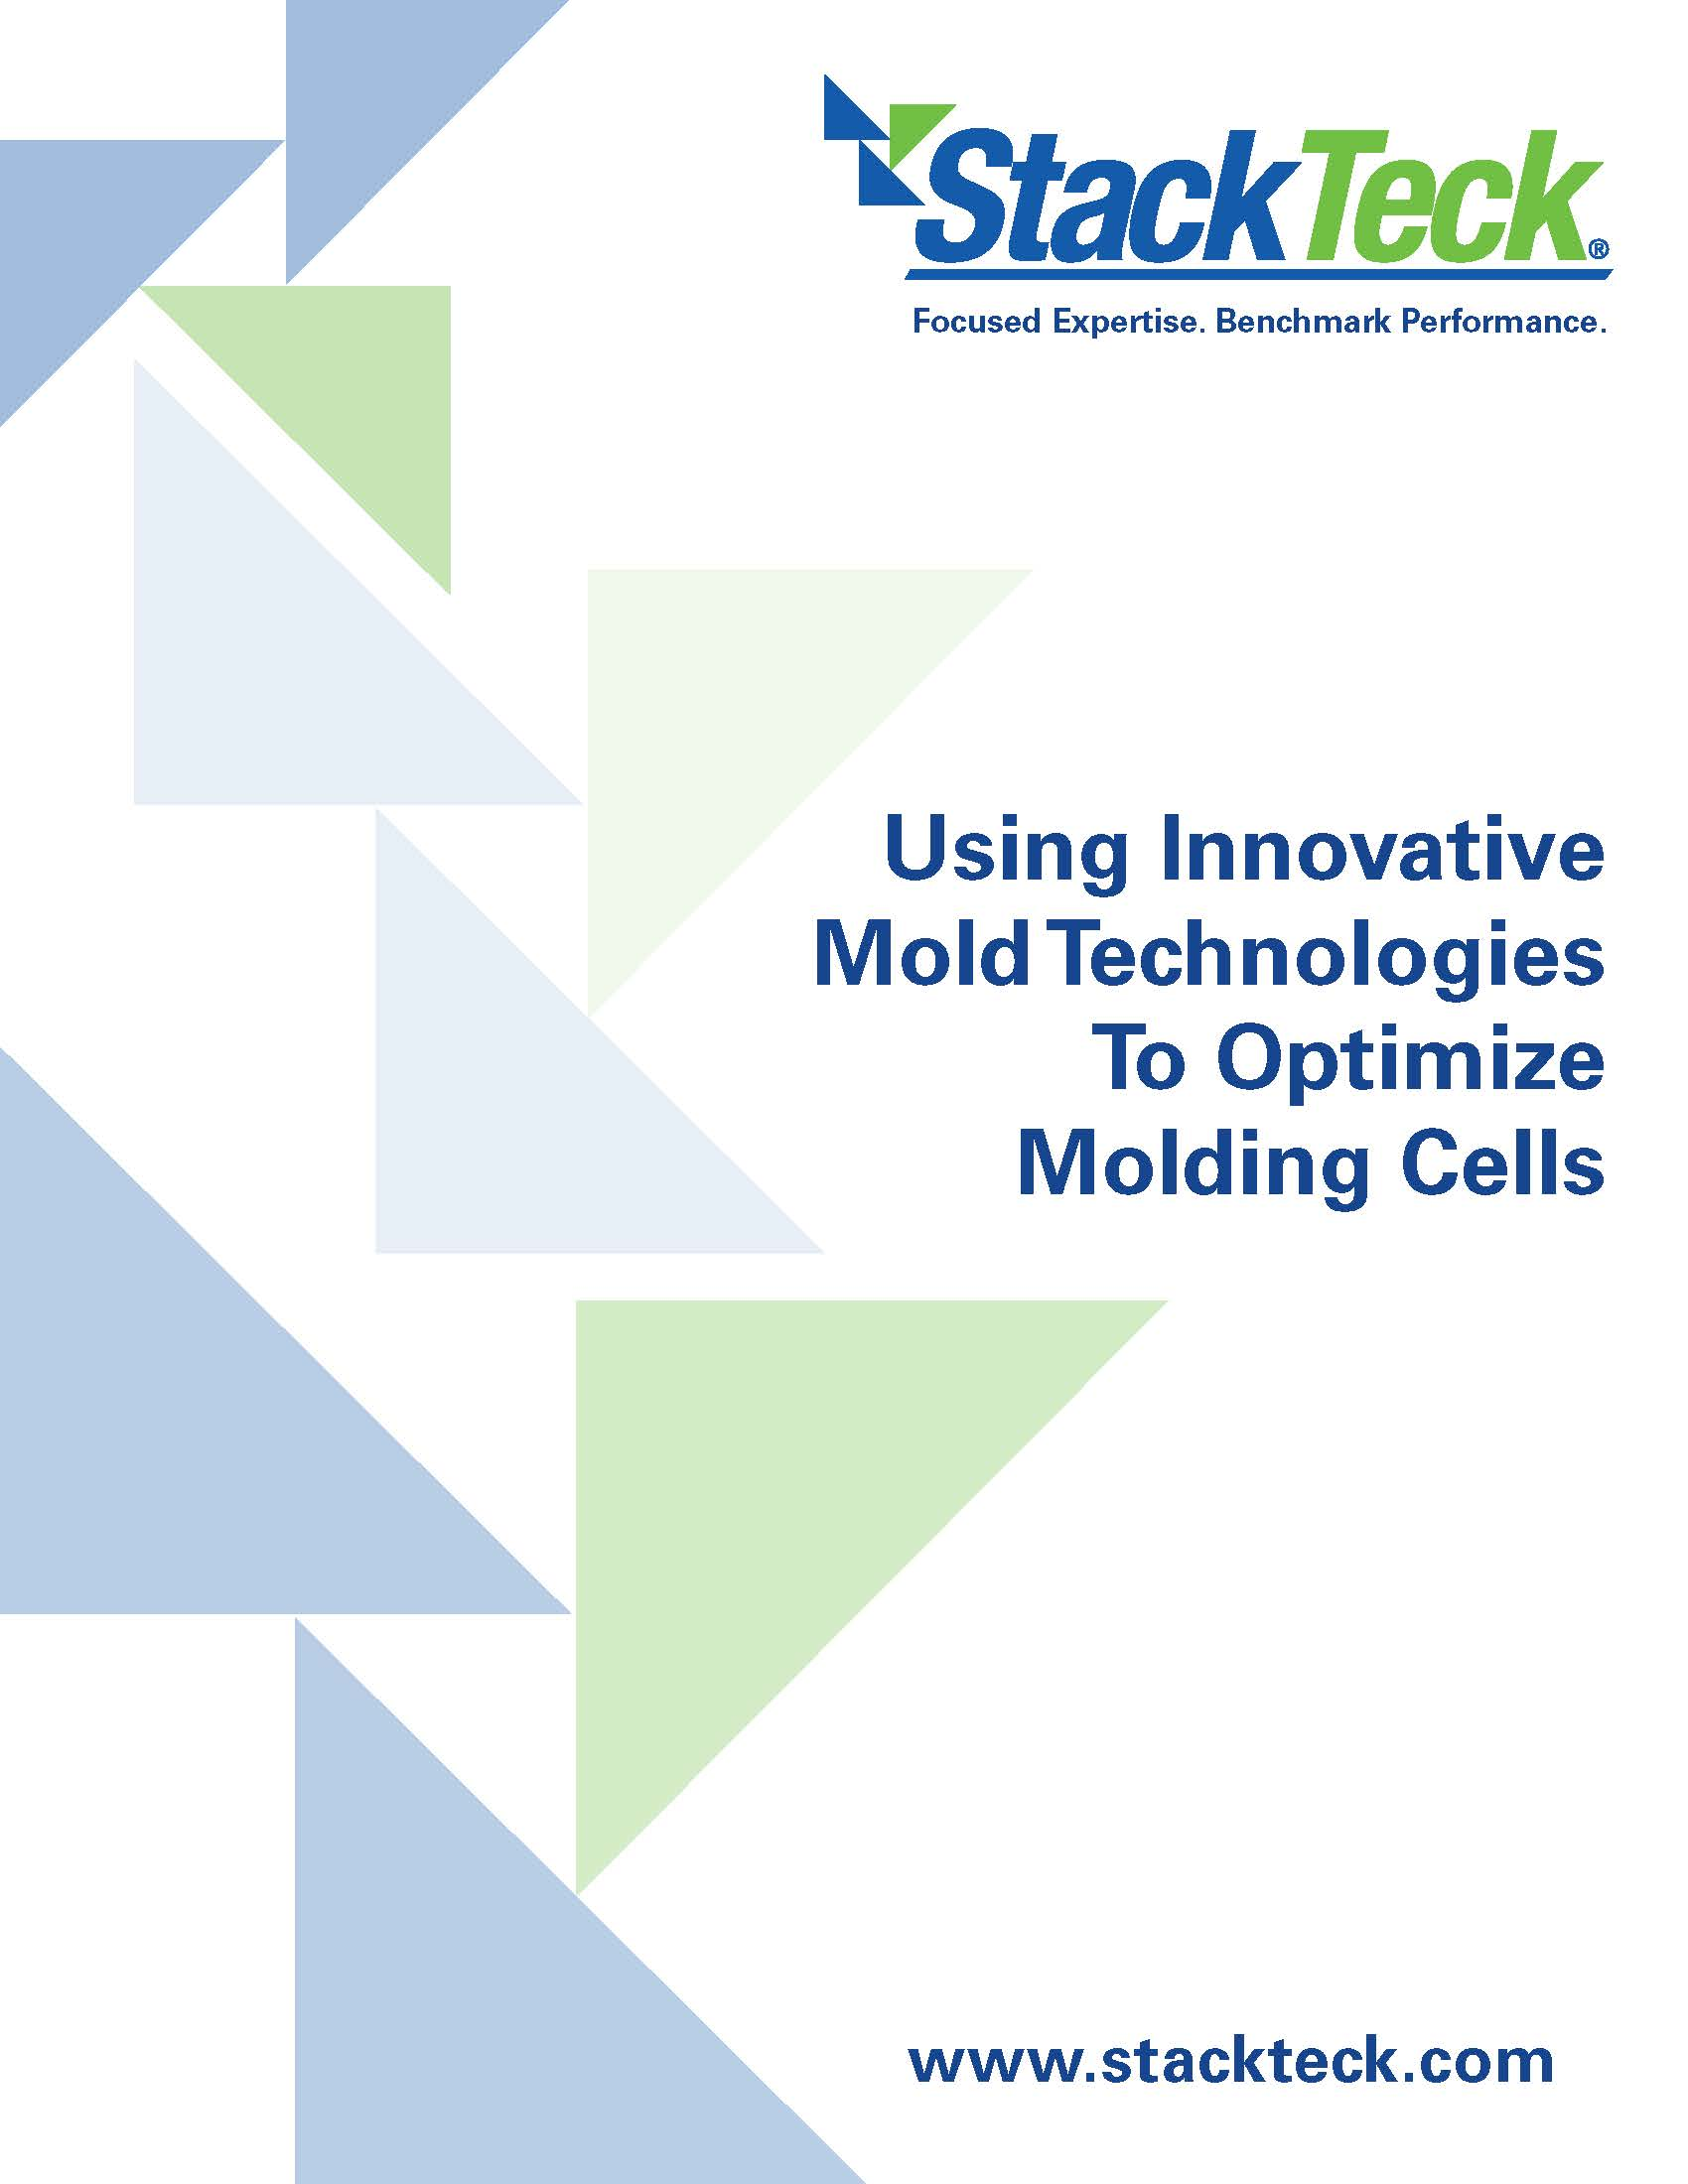 Using Innovative Mold Technologies to Optimize Molding Cells_Page_01